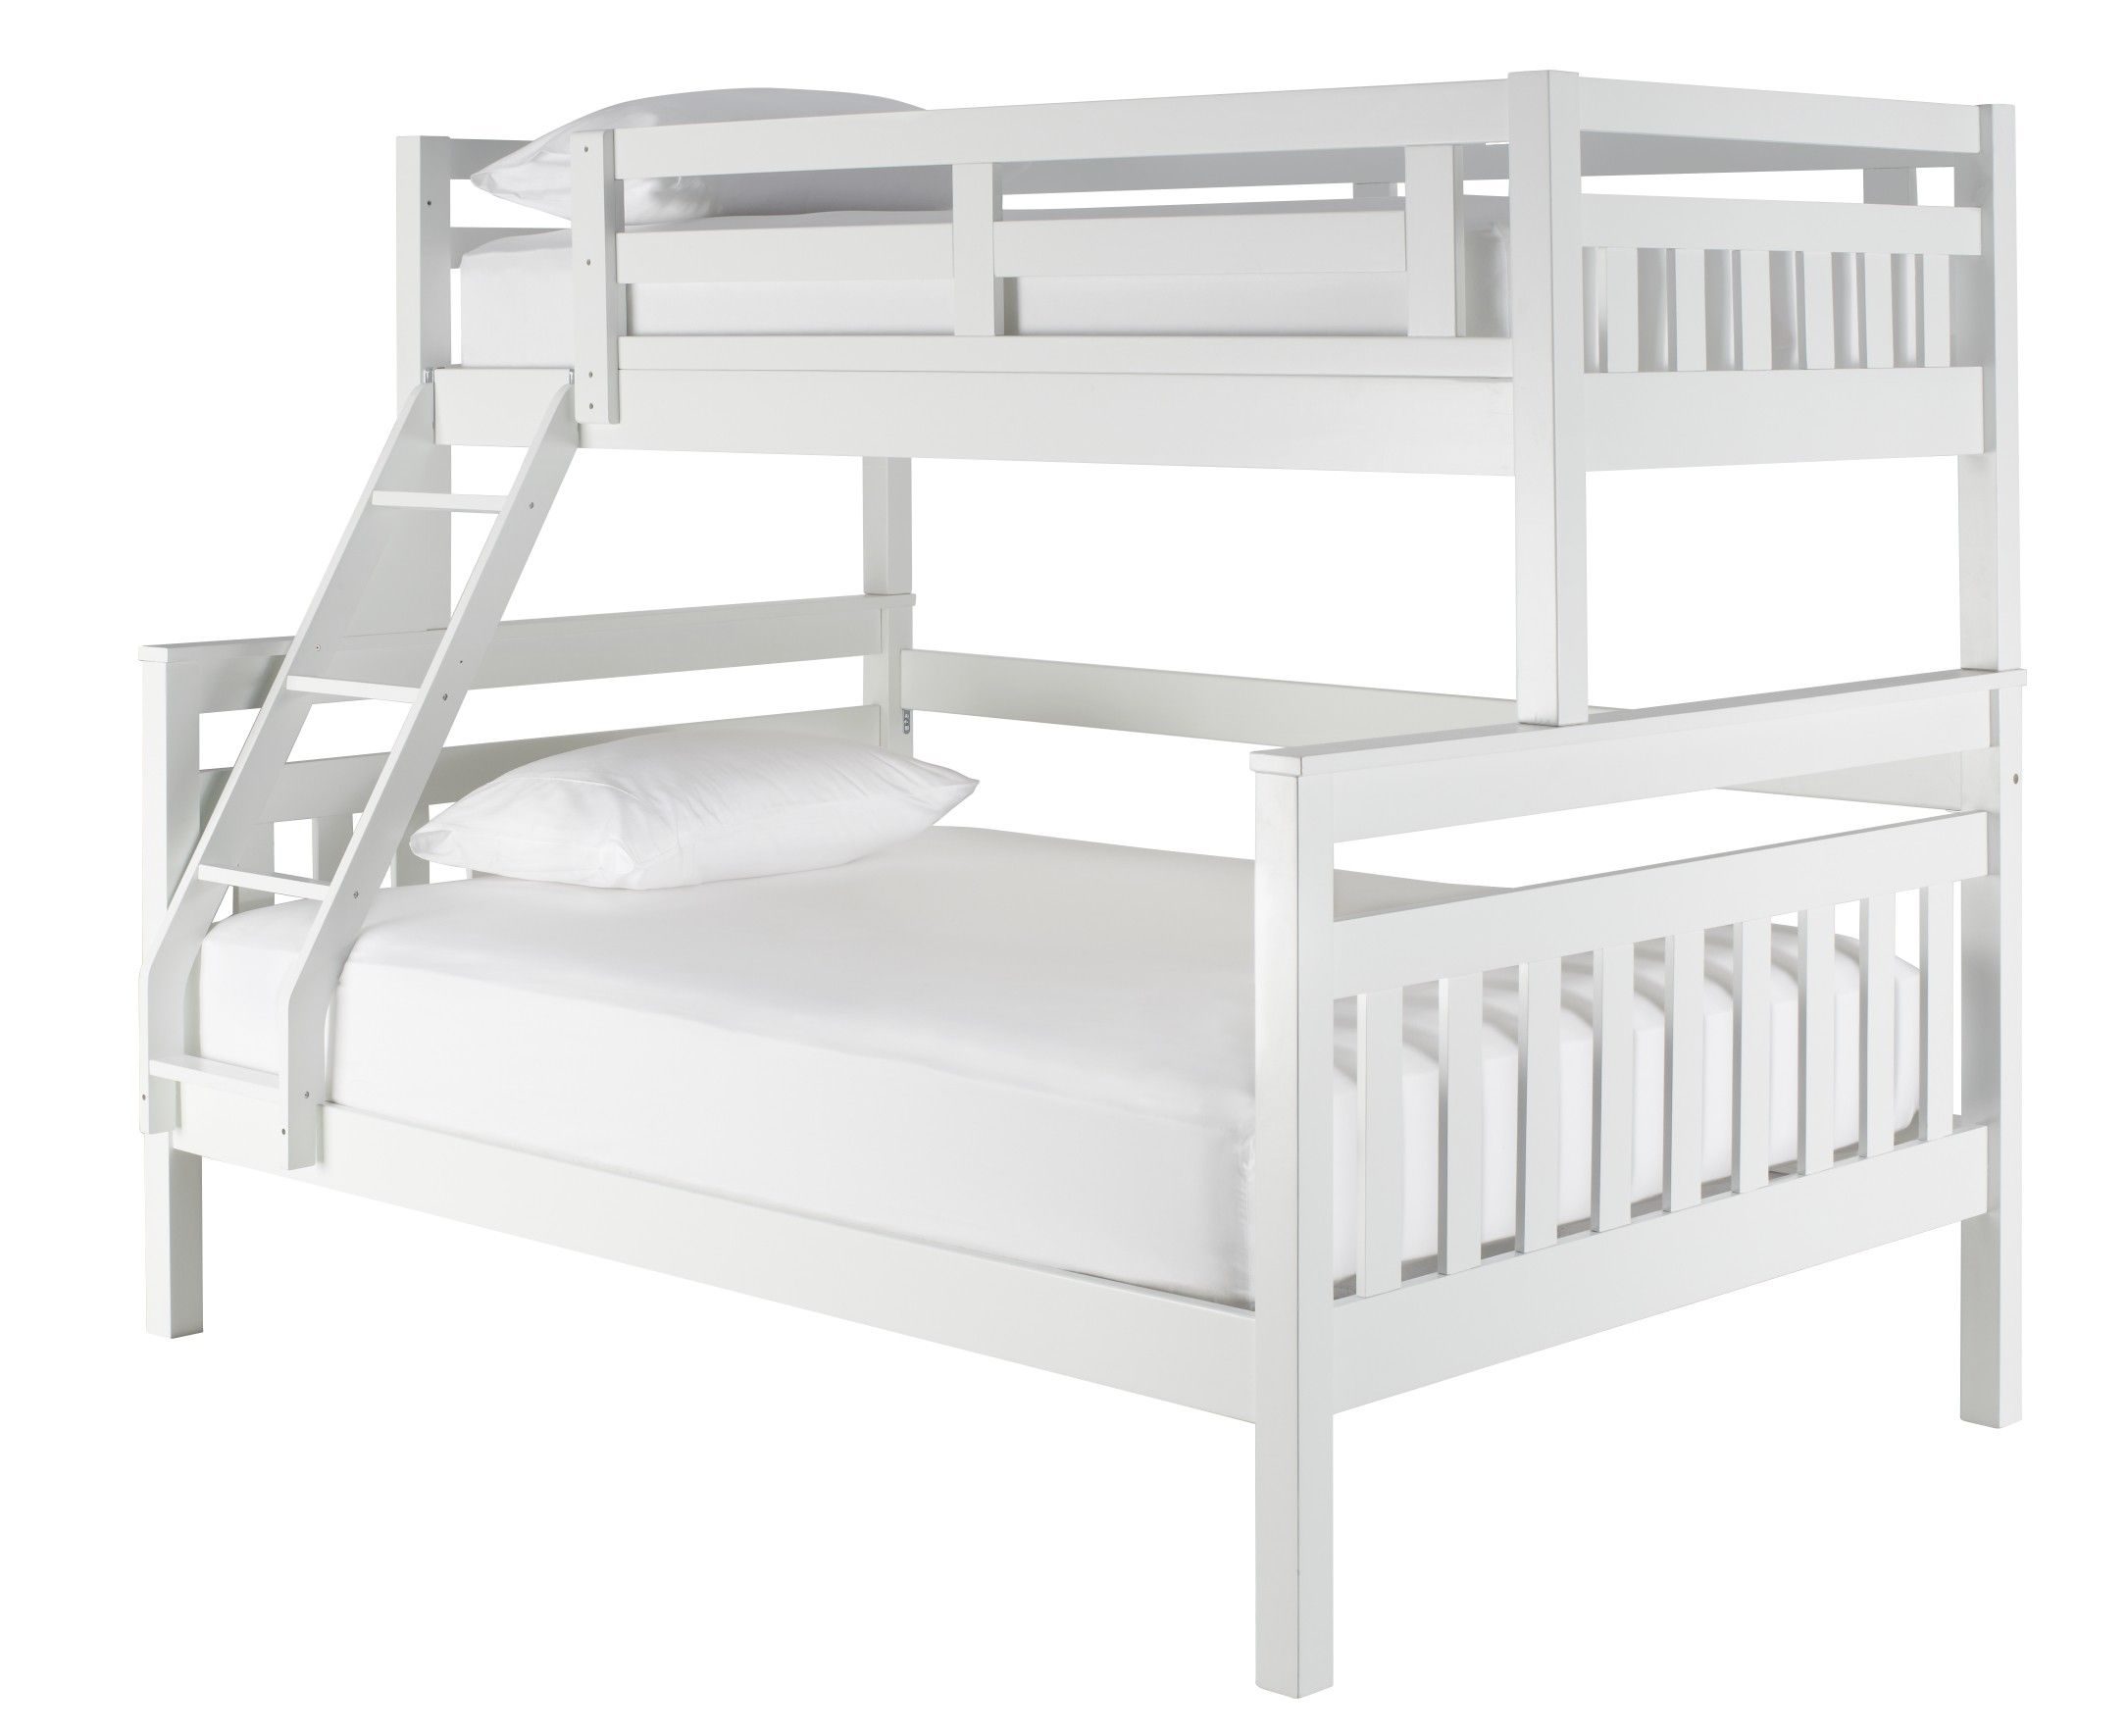 Would Love The Forty Winks Aztec Trio Bunk Bed For My Two